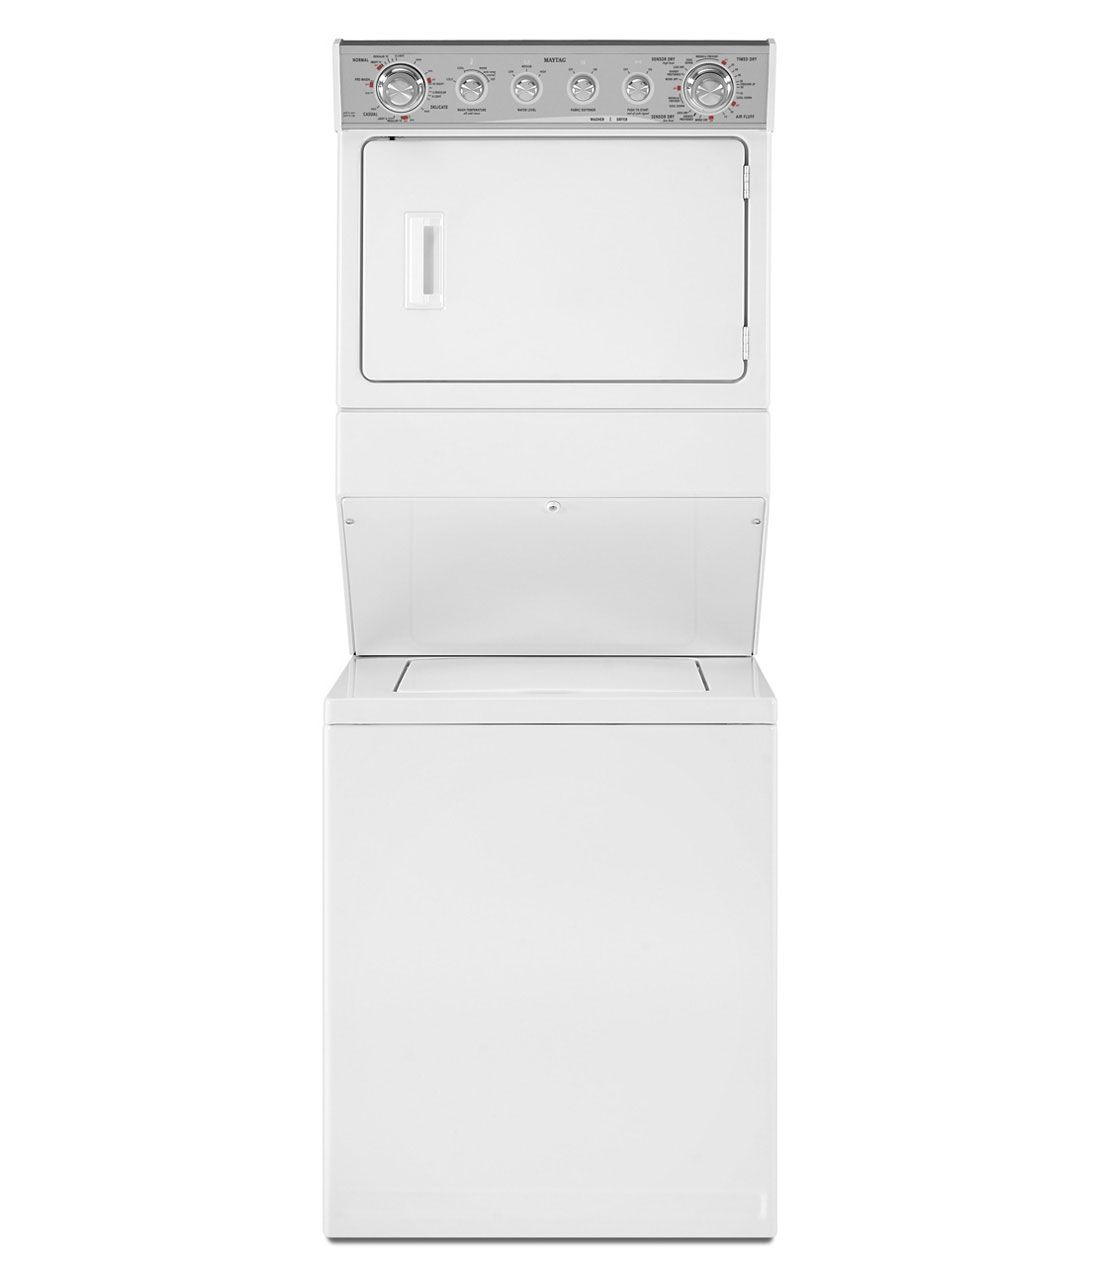 Stacked Gas Laundry Pair With Dependable Clean Wash System